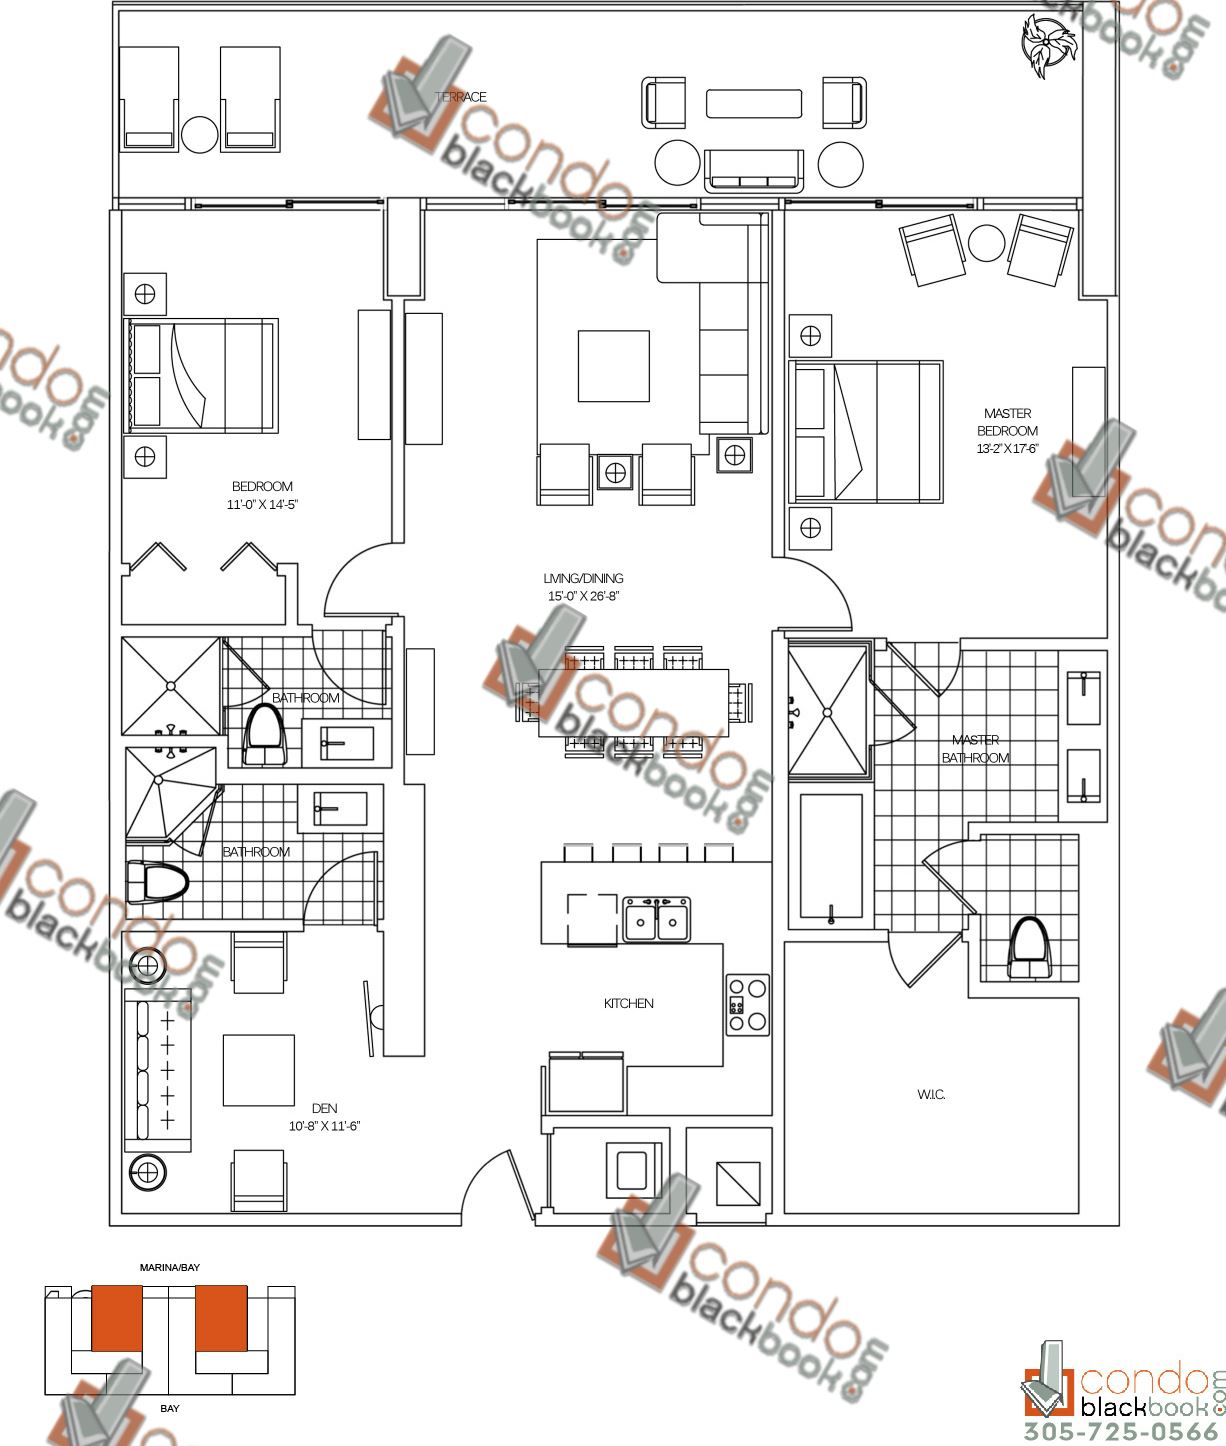 Floor plan for 400 Sunny Isles Sunny Isles Beach, model E, line 05, 2/3 bedrooms, 2,014 sq ft